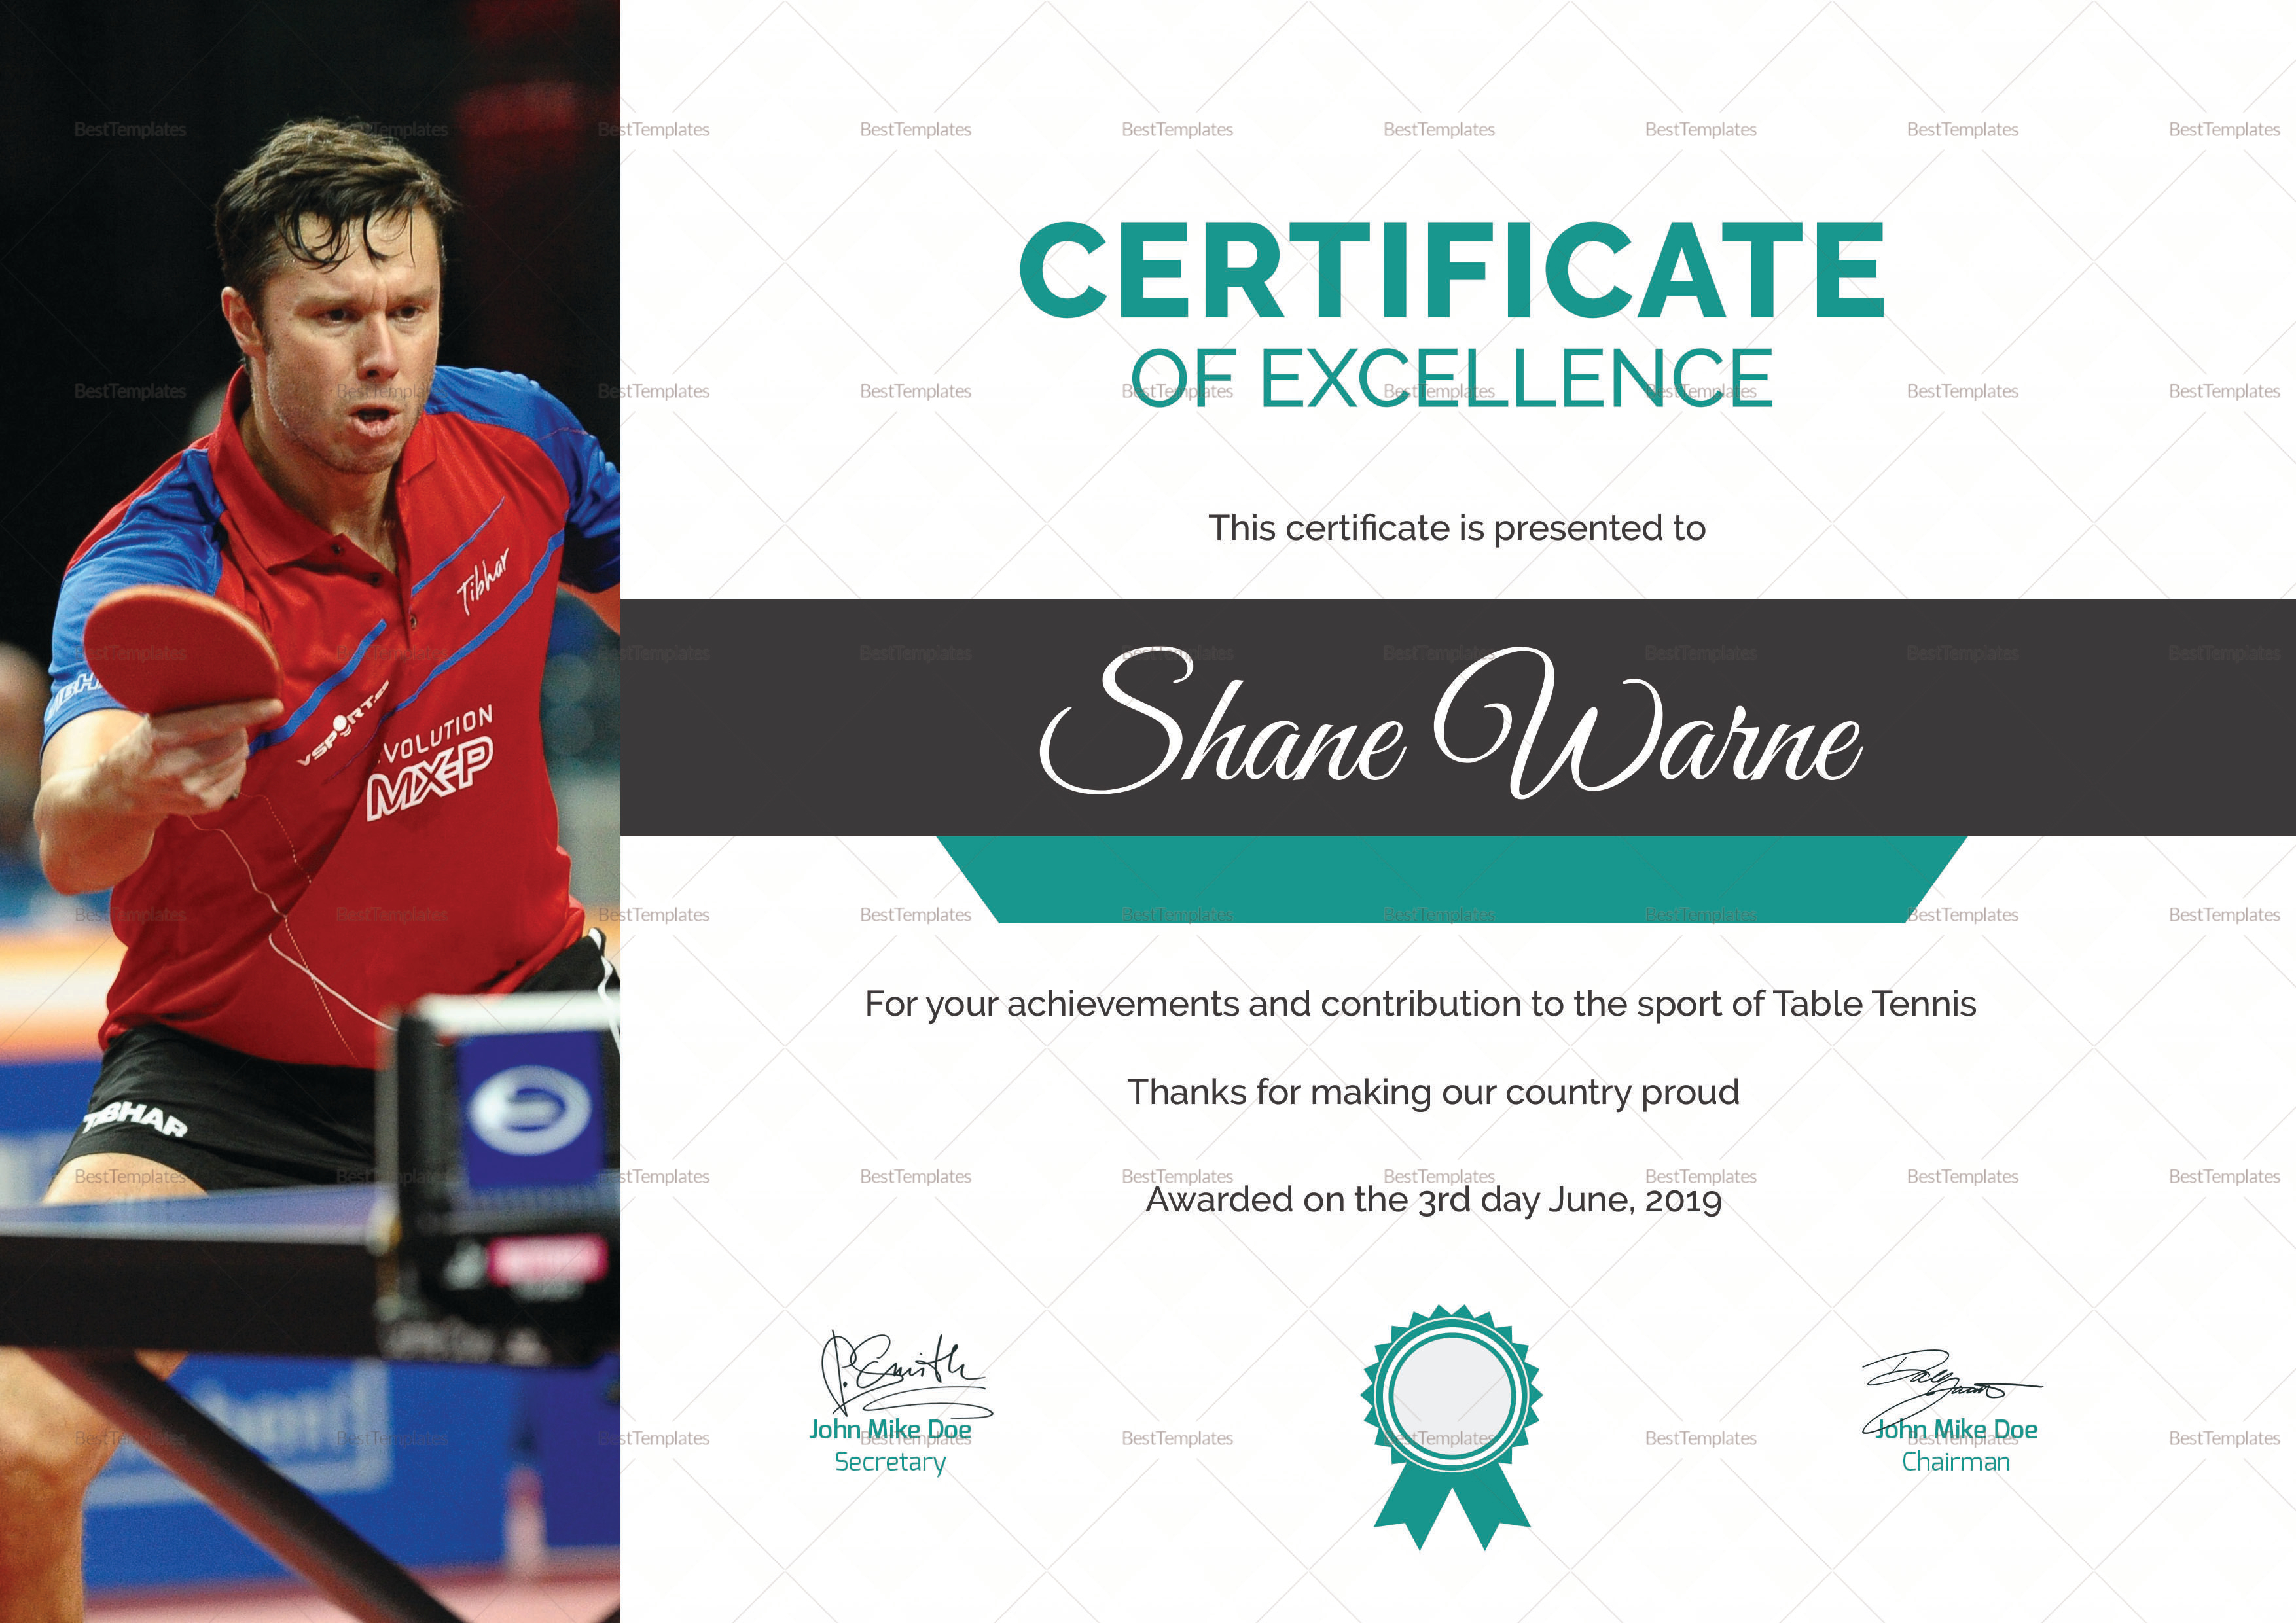 Table Tennis Excellence Certificate Design Template